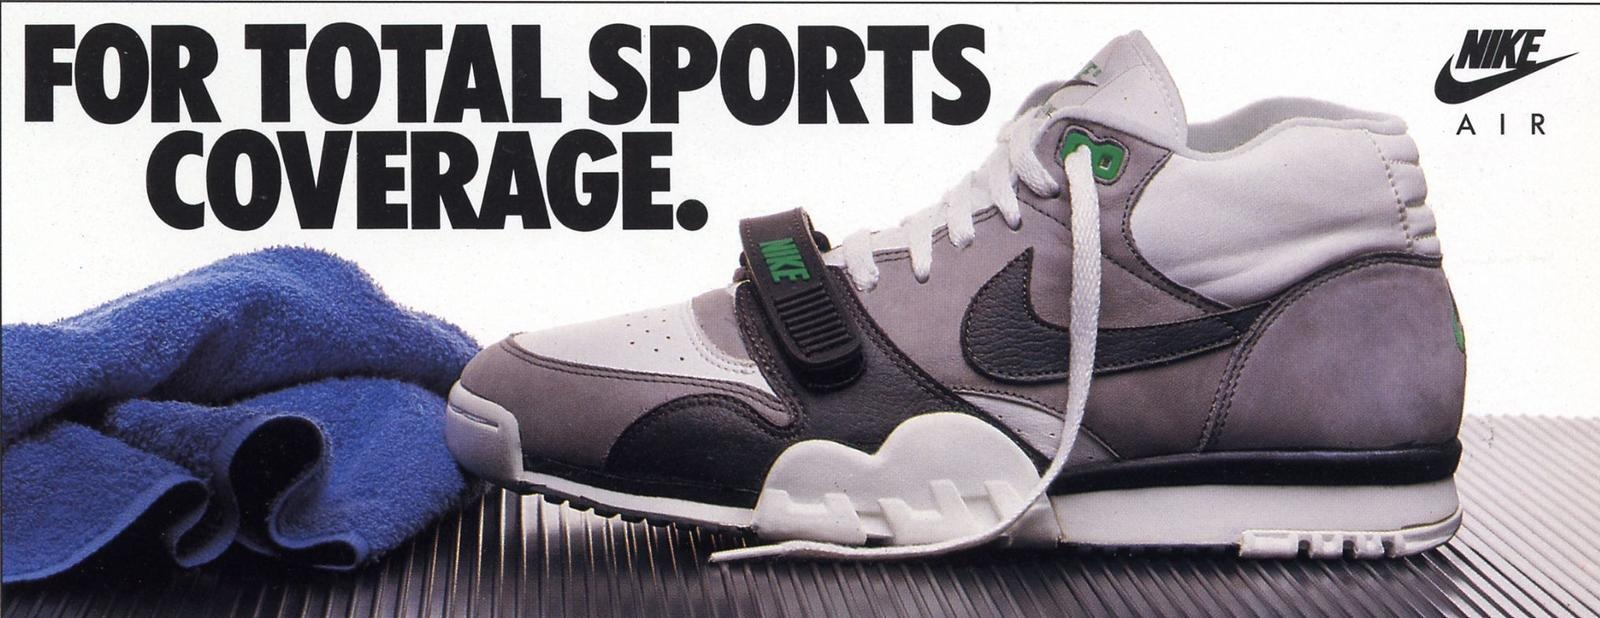 air-jordan-3-chlorophyll-blog-1